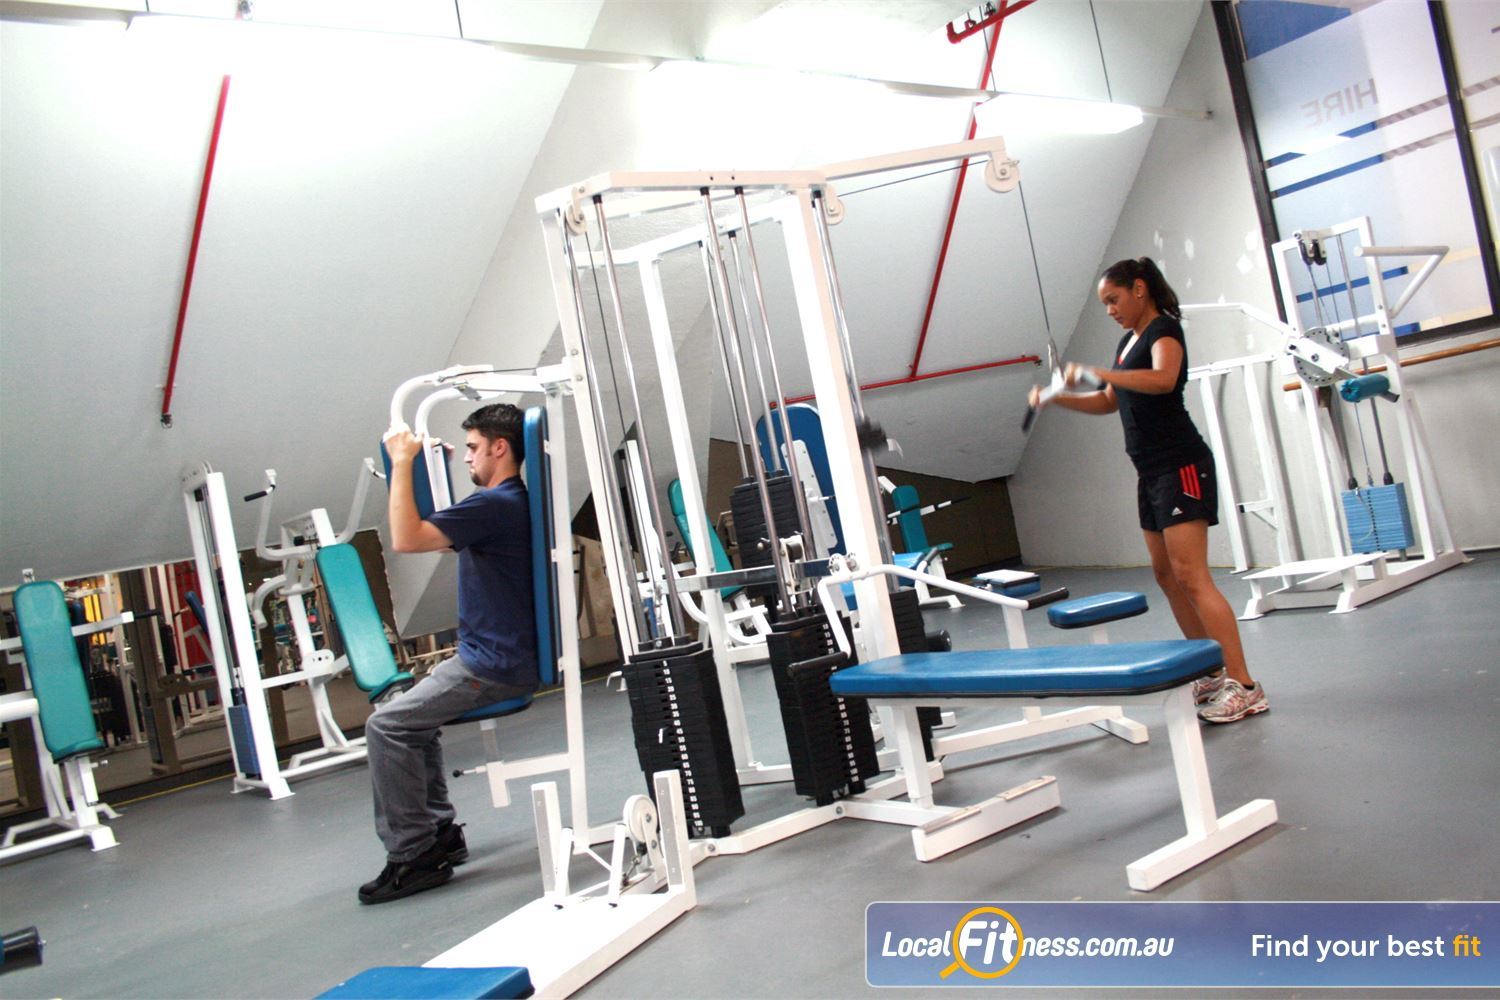 Docklands Gym & Squash Centre Near Southbank Our Docklands gym cater for all ages and abilities.